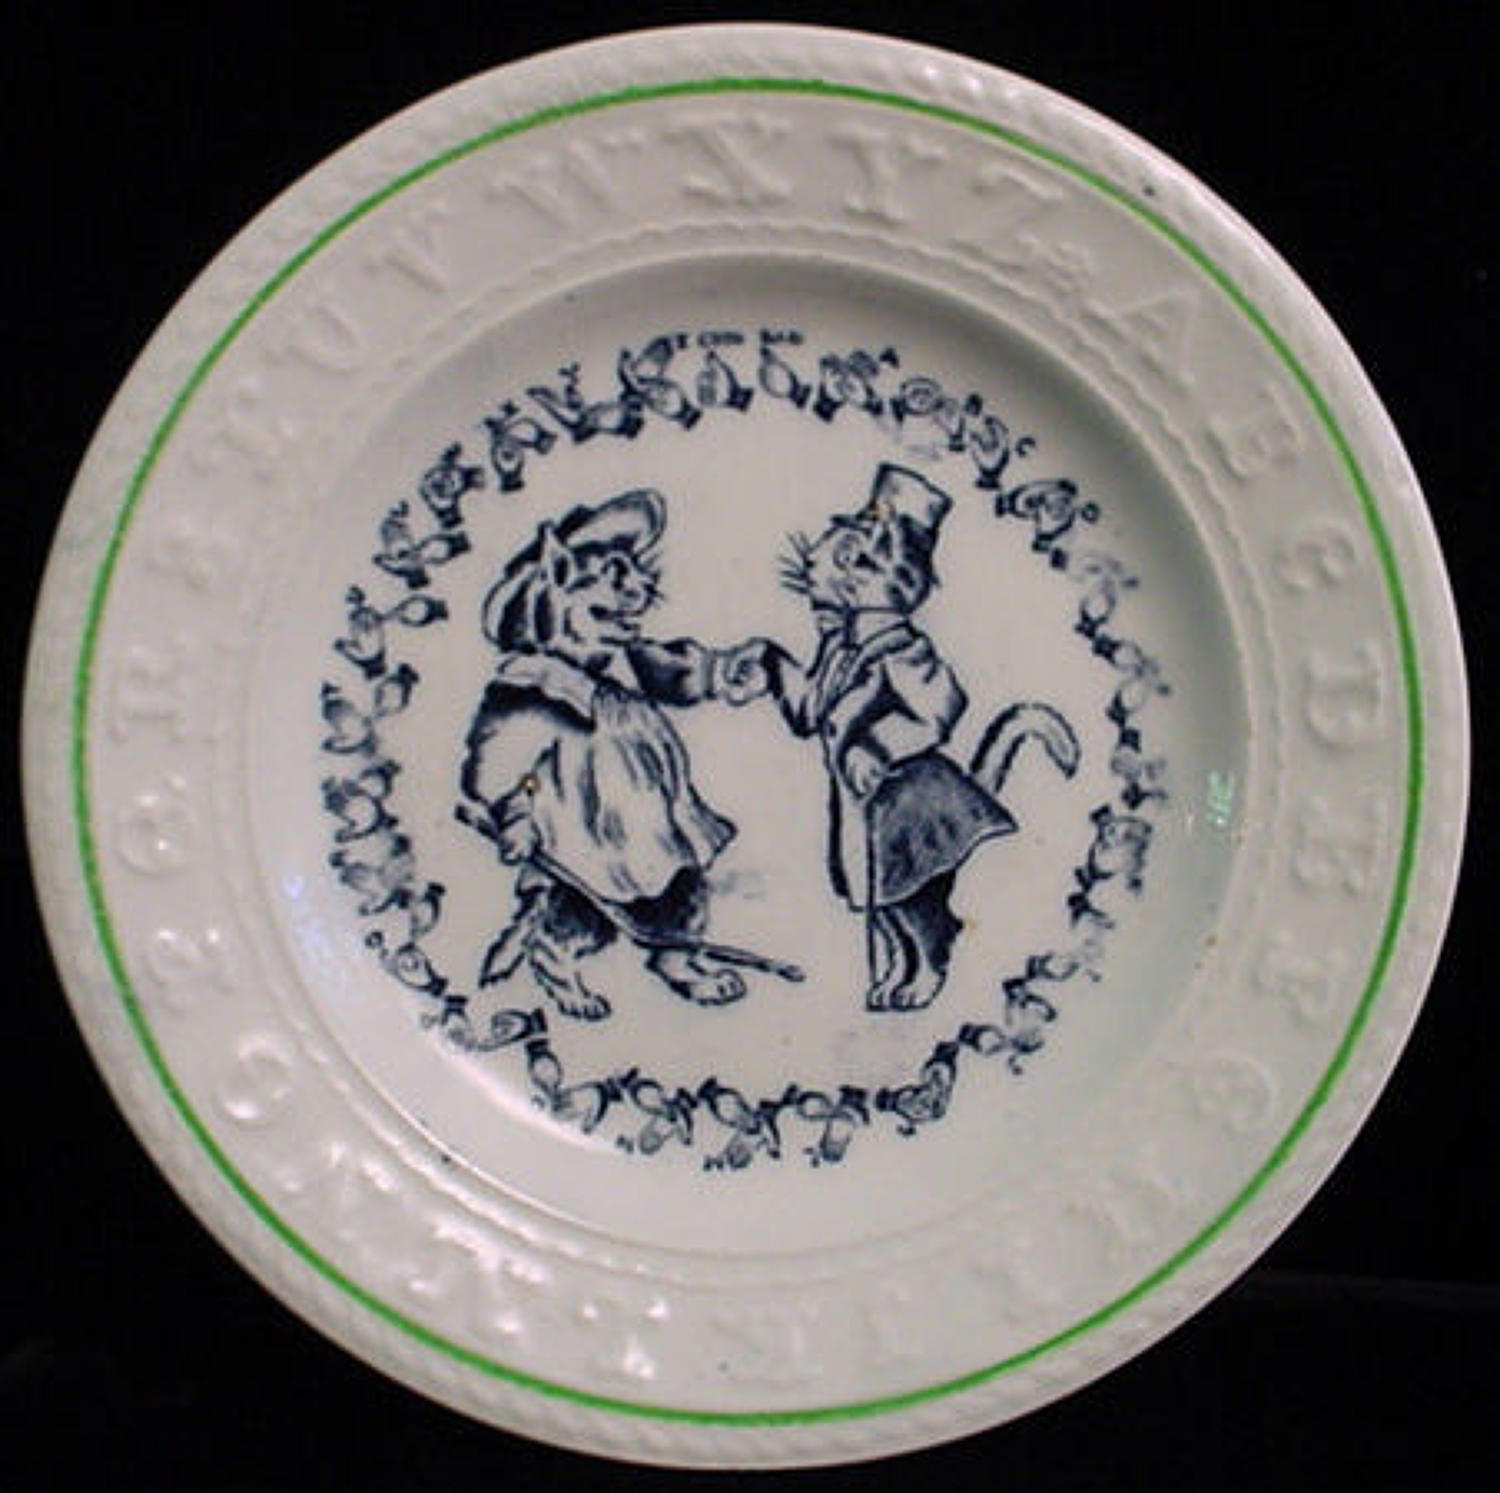 EXC Double ABC Plate ~ CATS ~ Sign Language 1890